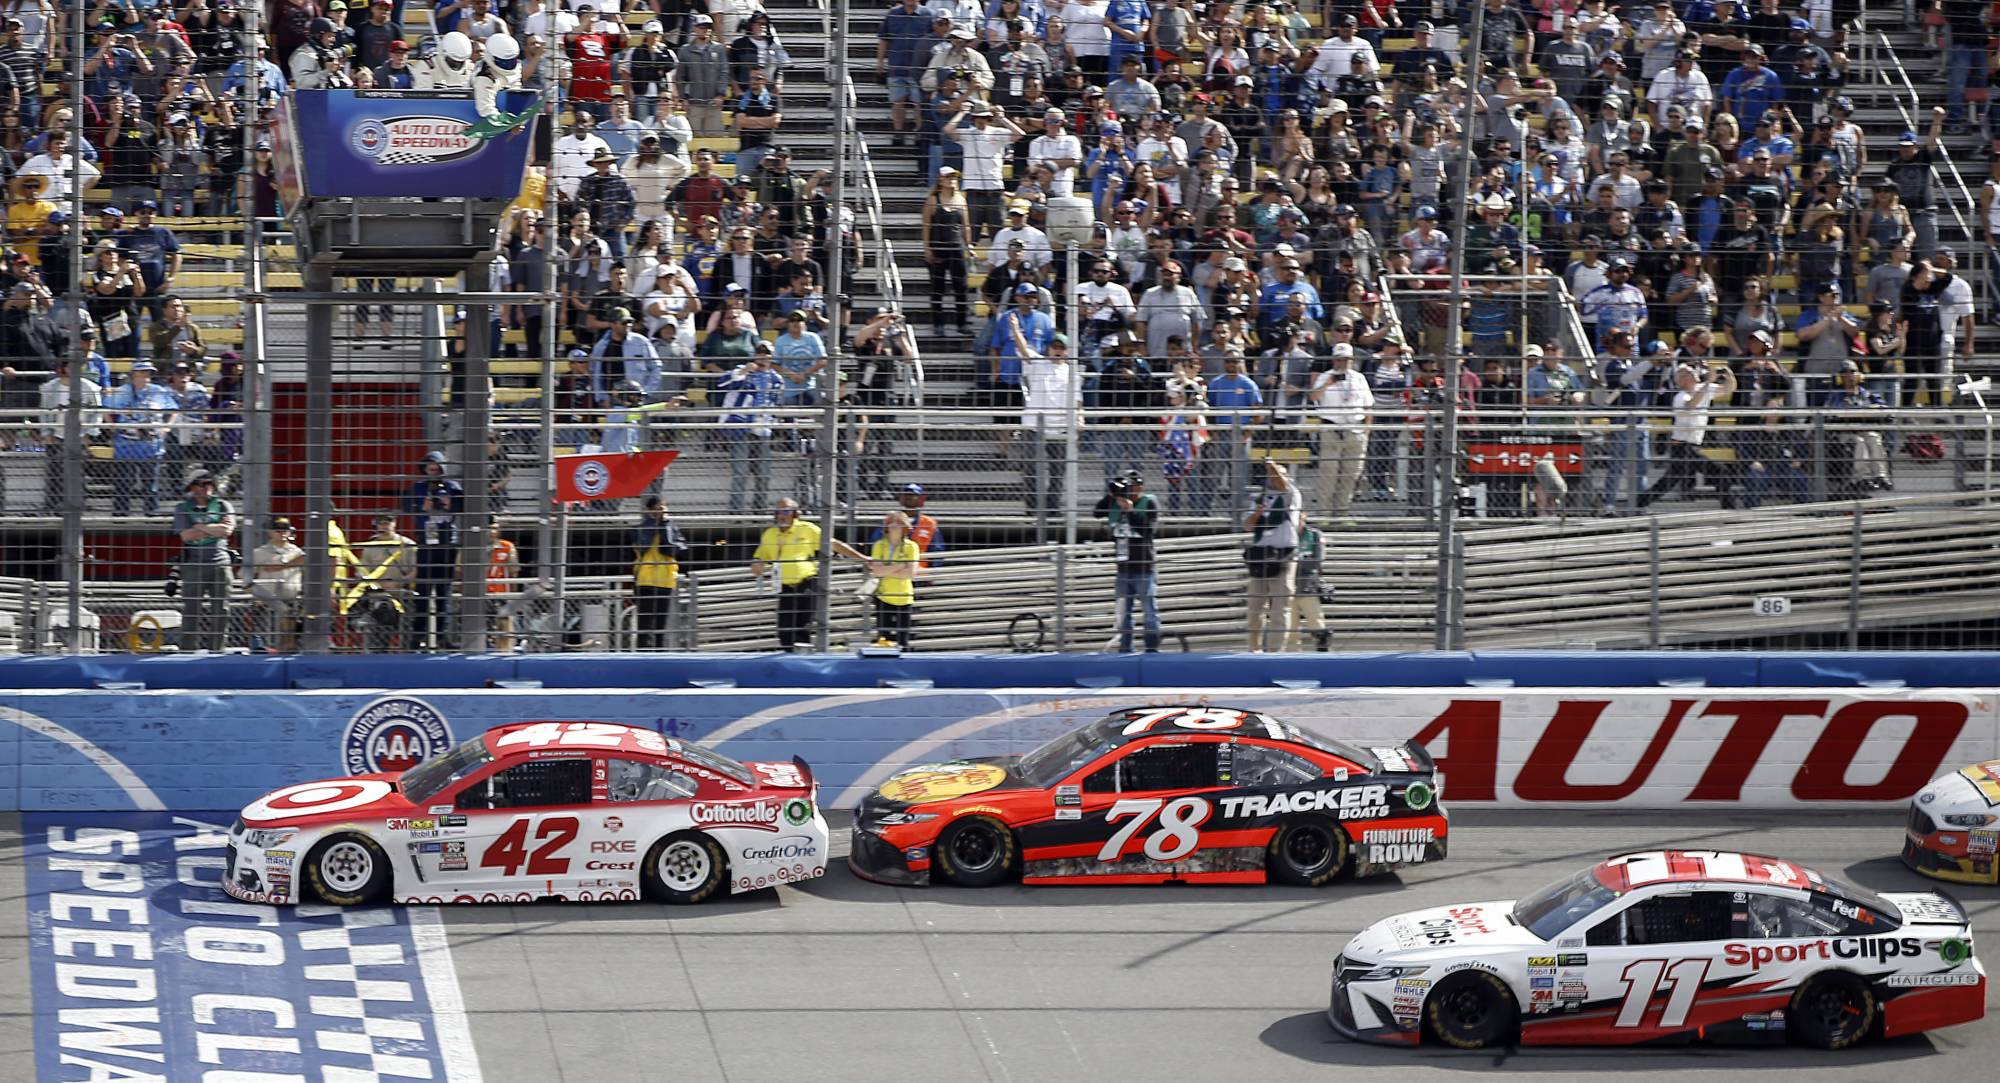 Larson completes weekend sweep, wins Auto Club 400